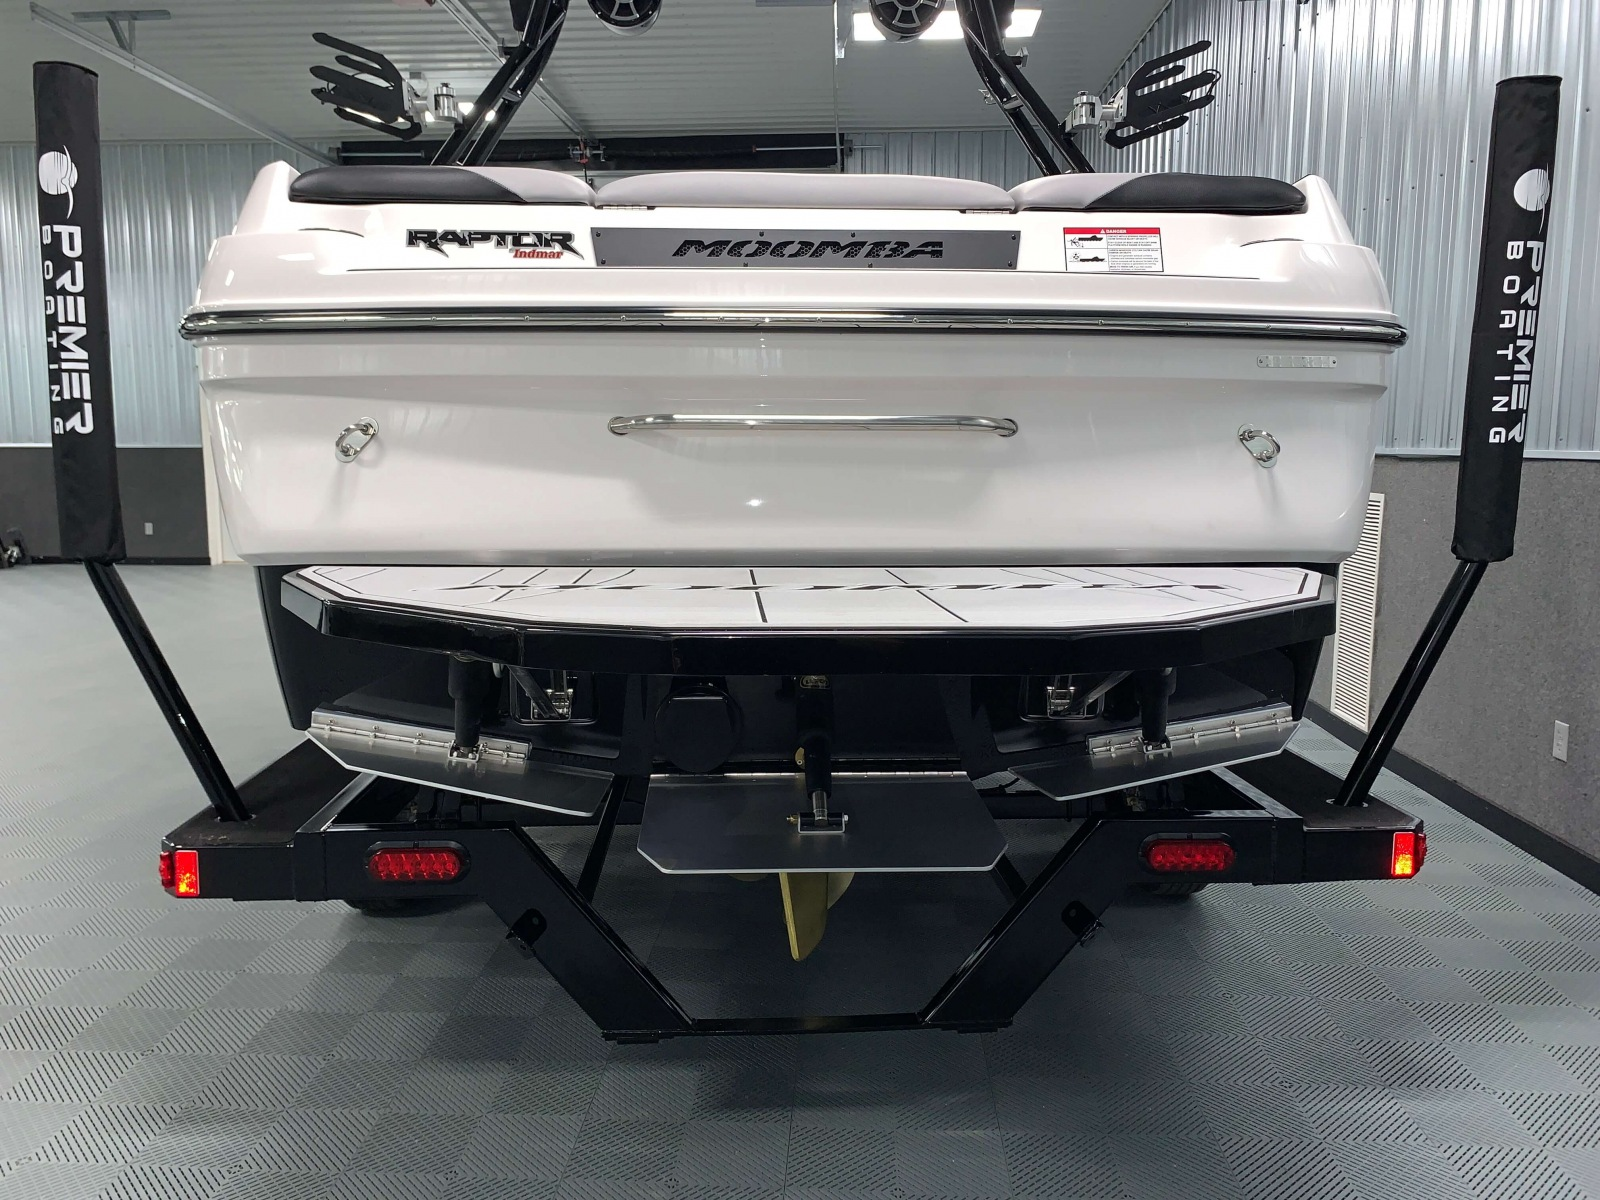 Flow 2.0 Surf System of the 2021 Moomba Craz Wake Boat